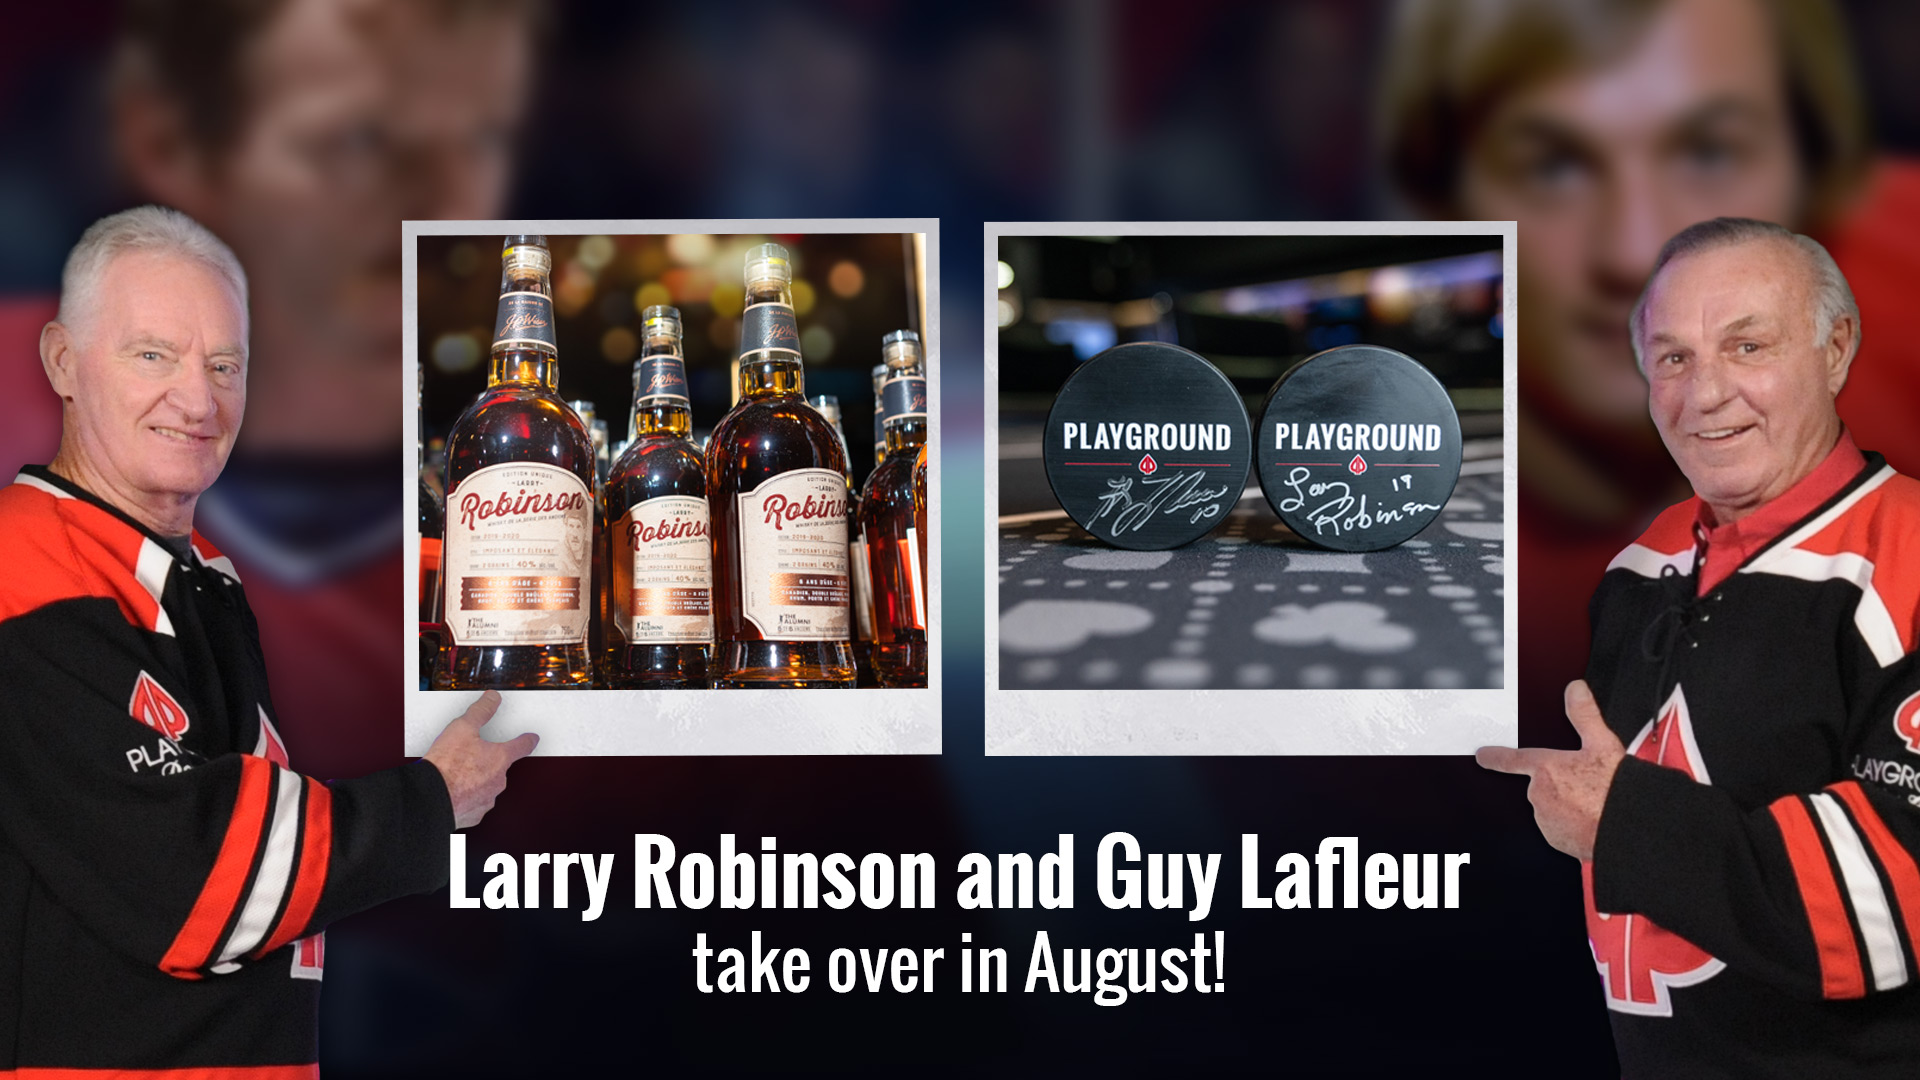 Larry Robinson and Guy Lafleur take over in August!